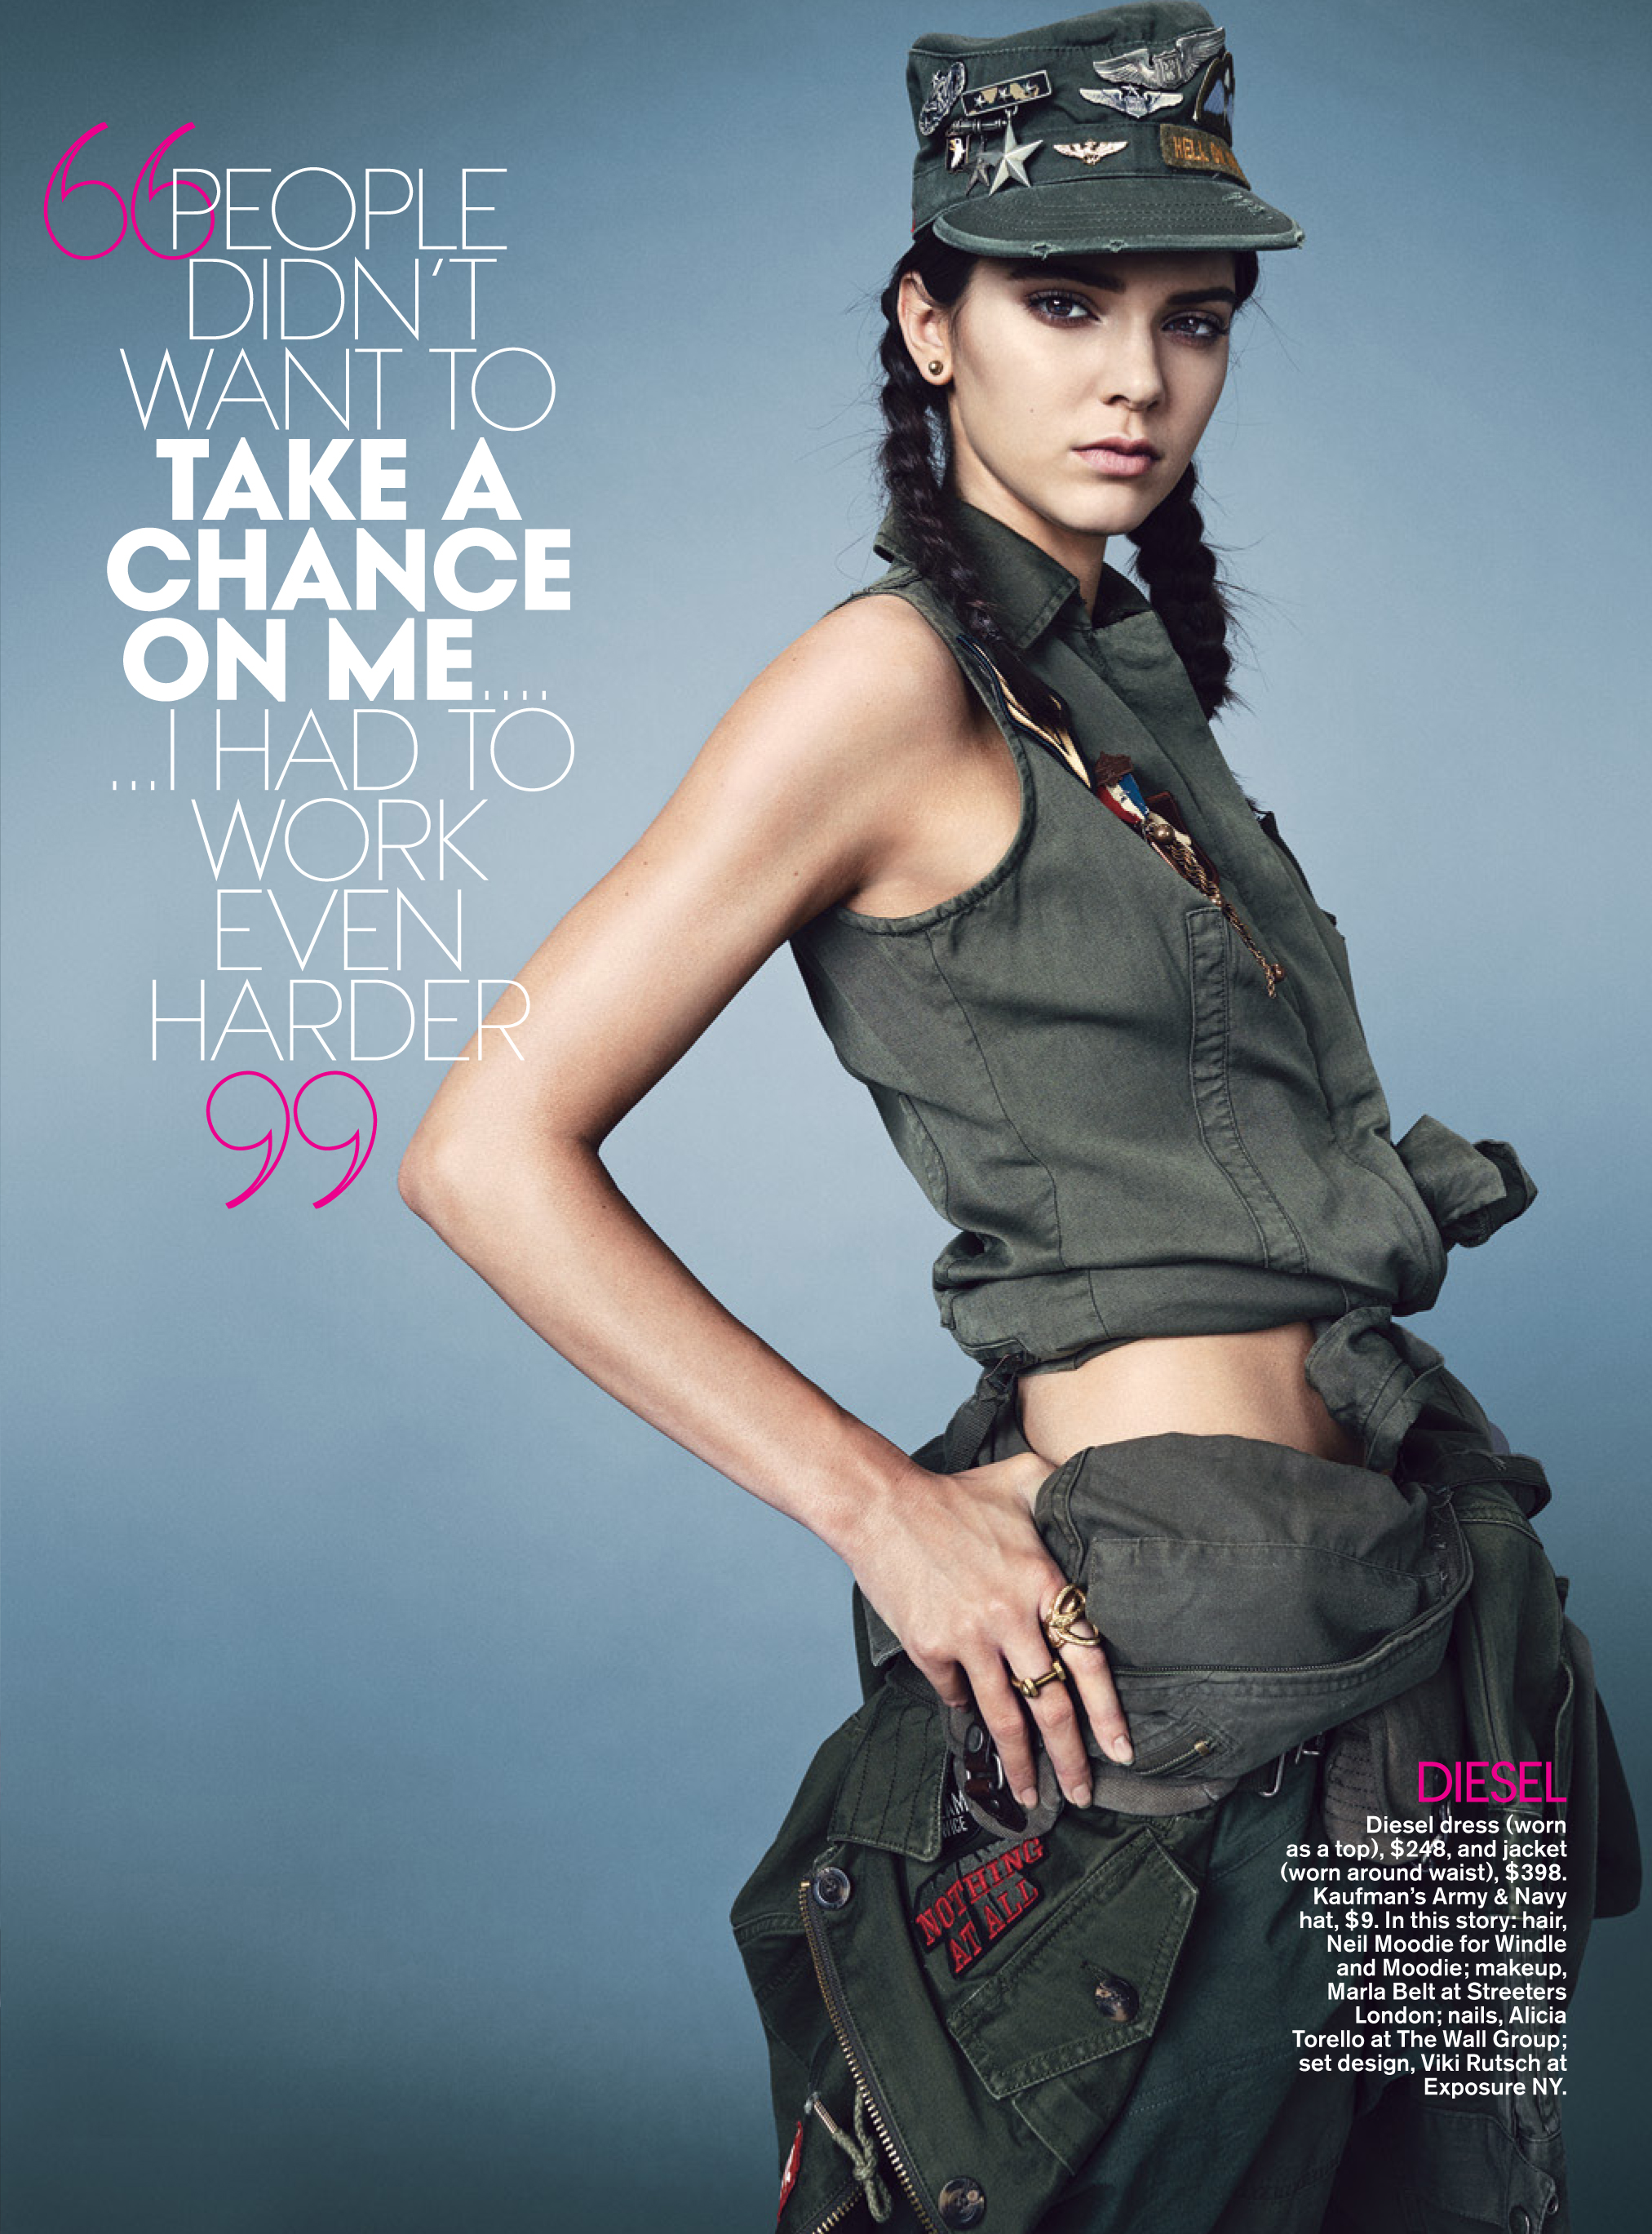 COVER STORY WITH KENDALL JENNER.   TEEN VOGUE, 9/14    Acorn Nut Stud Earrings, Shackle Ring   (middle finger)